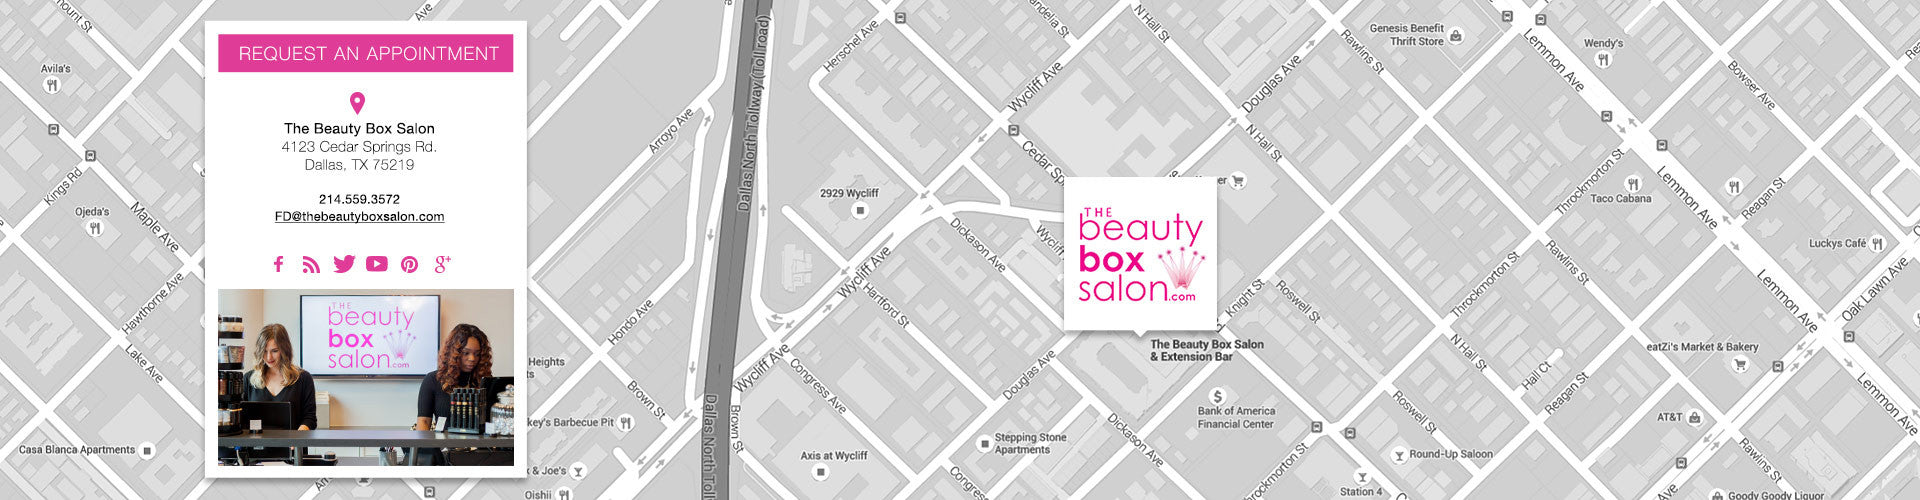 Book an Appointment at The Beauty Box Salon!